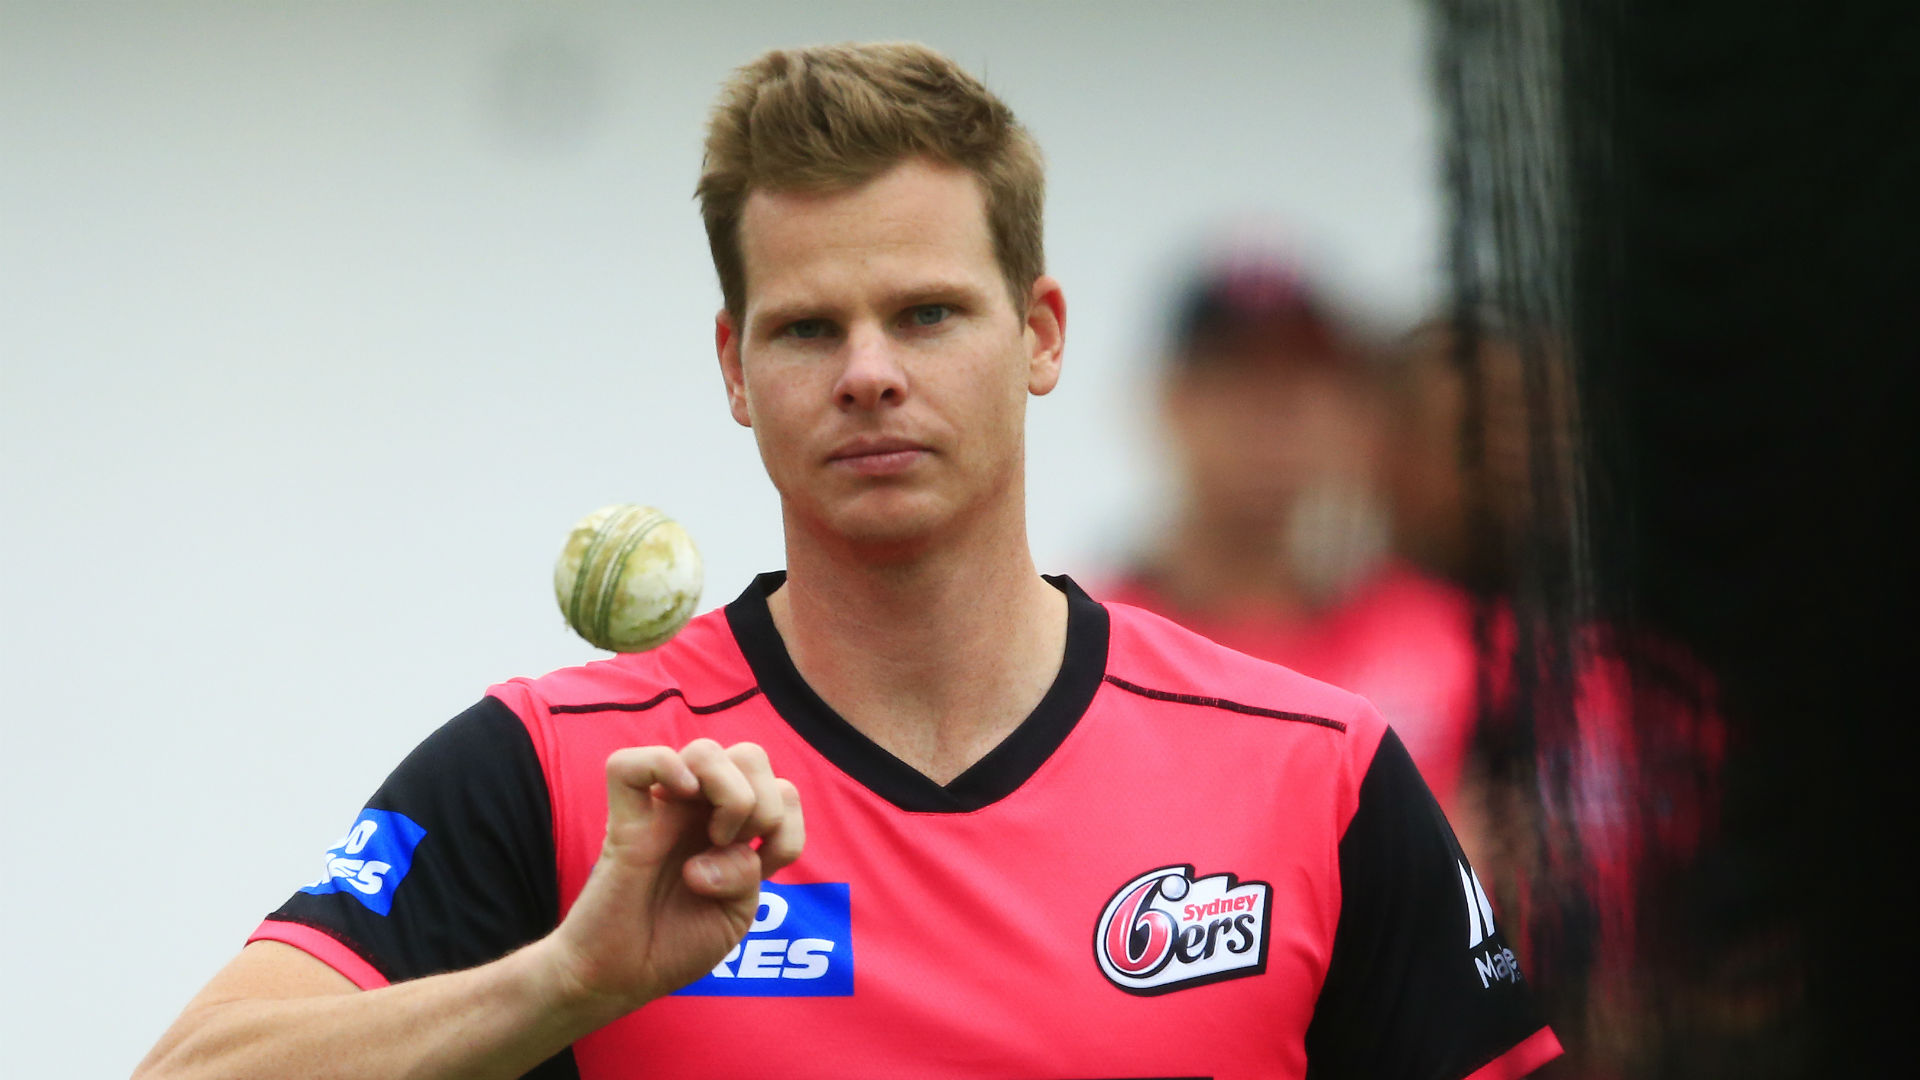 Steve Smith may miss a potential five-match ODI series against Pakistan after his ban ends due to the Australia star needing elbow surgery.